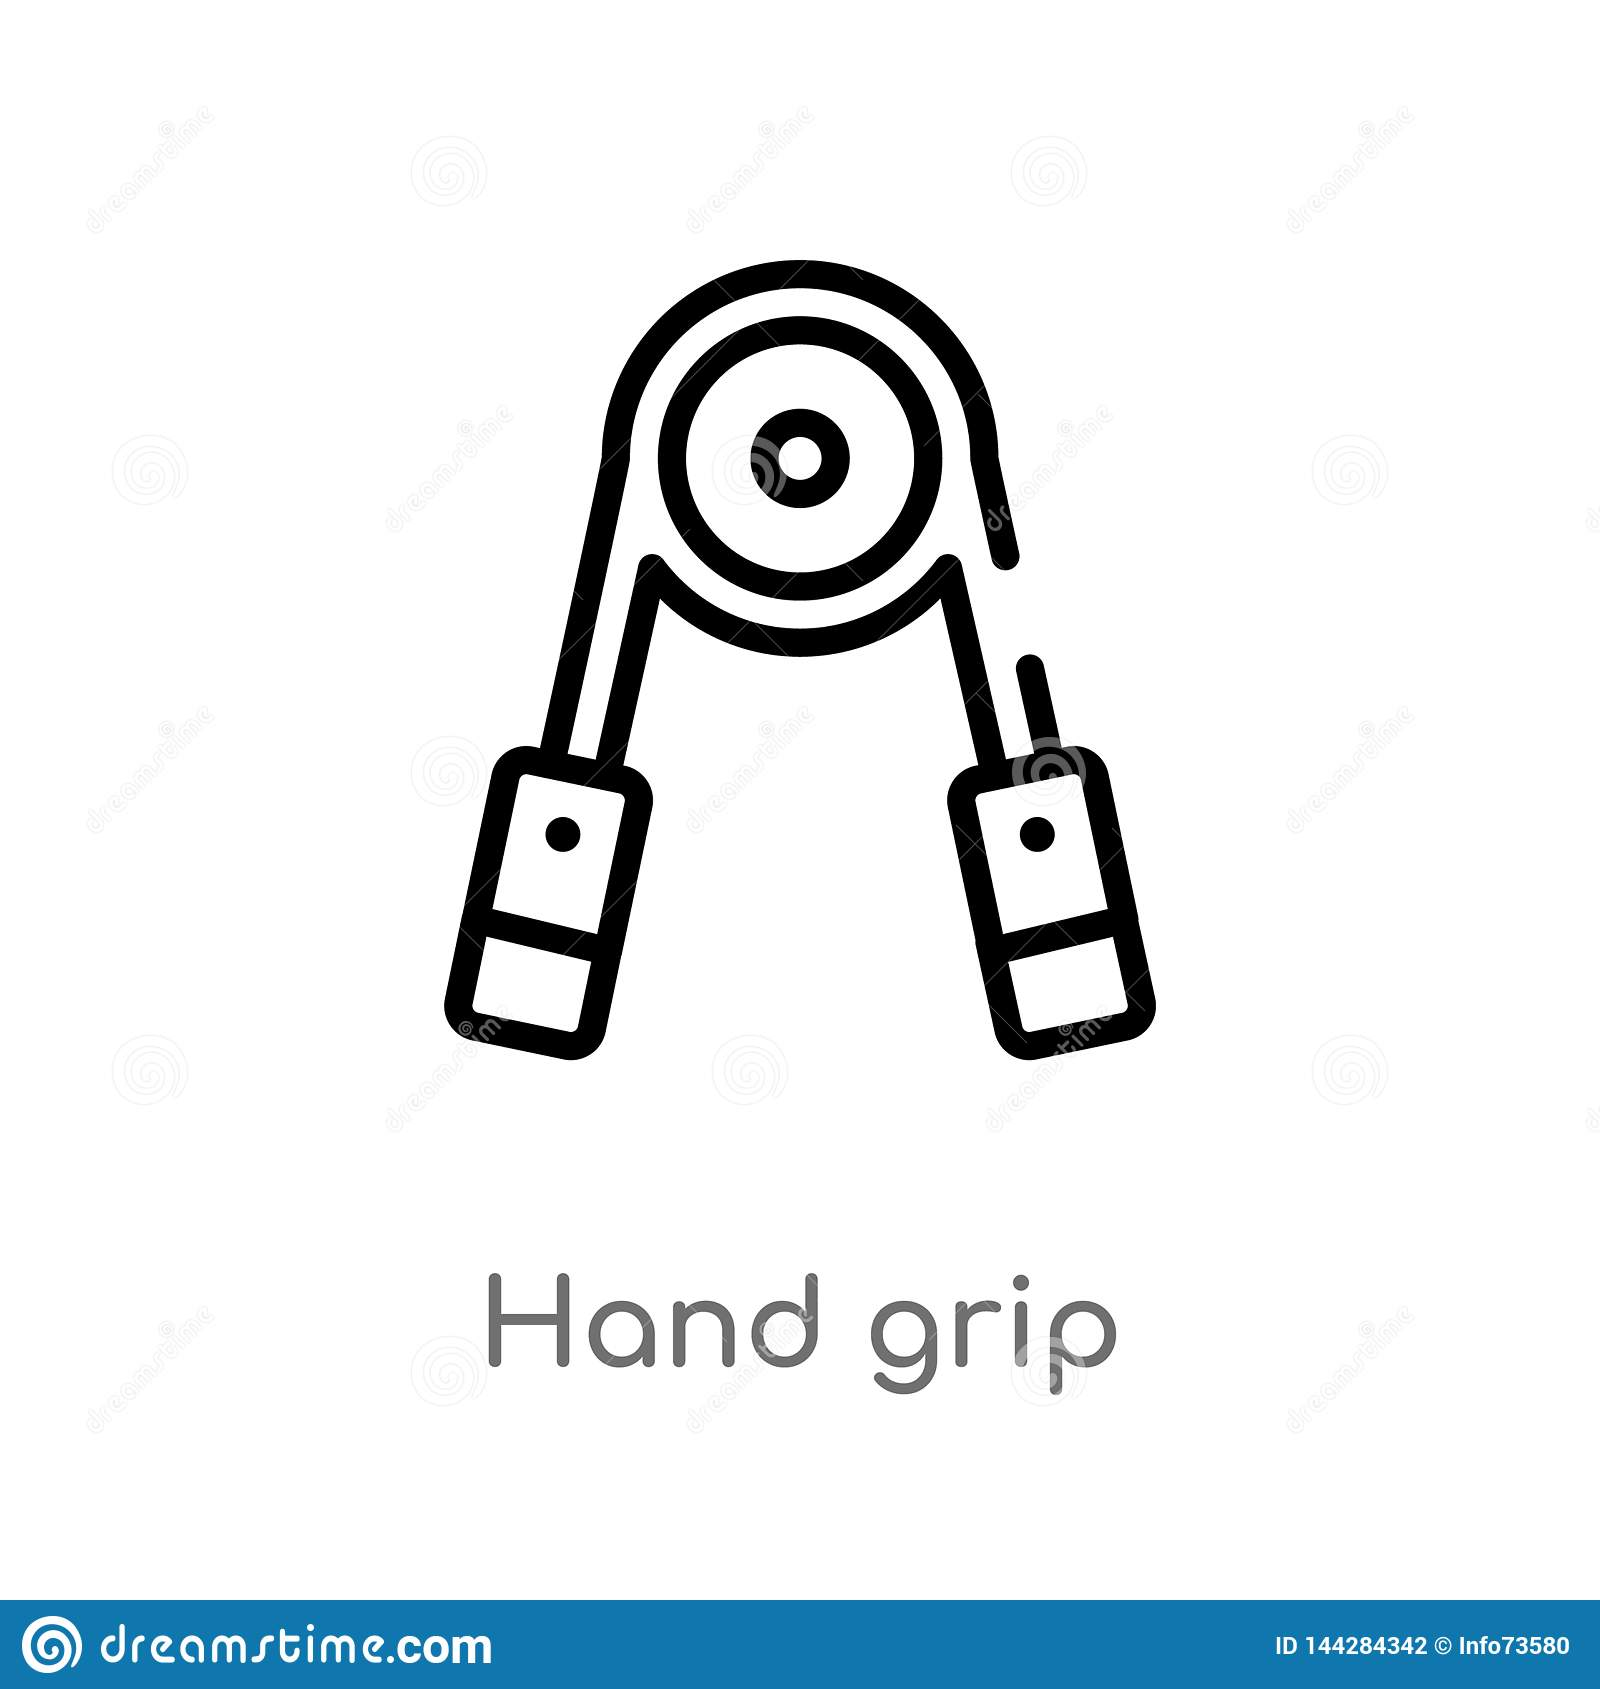 outline hand grip vector icon. isolated black simple line element illustration from gym equipment concept. editable vector stroke